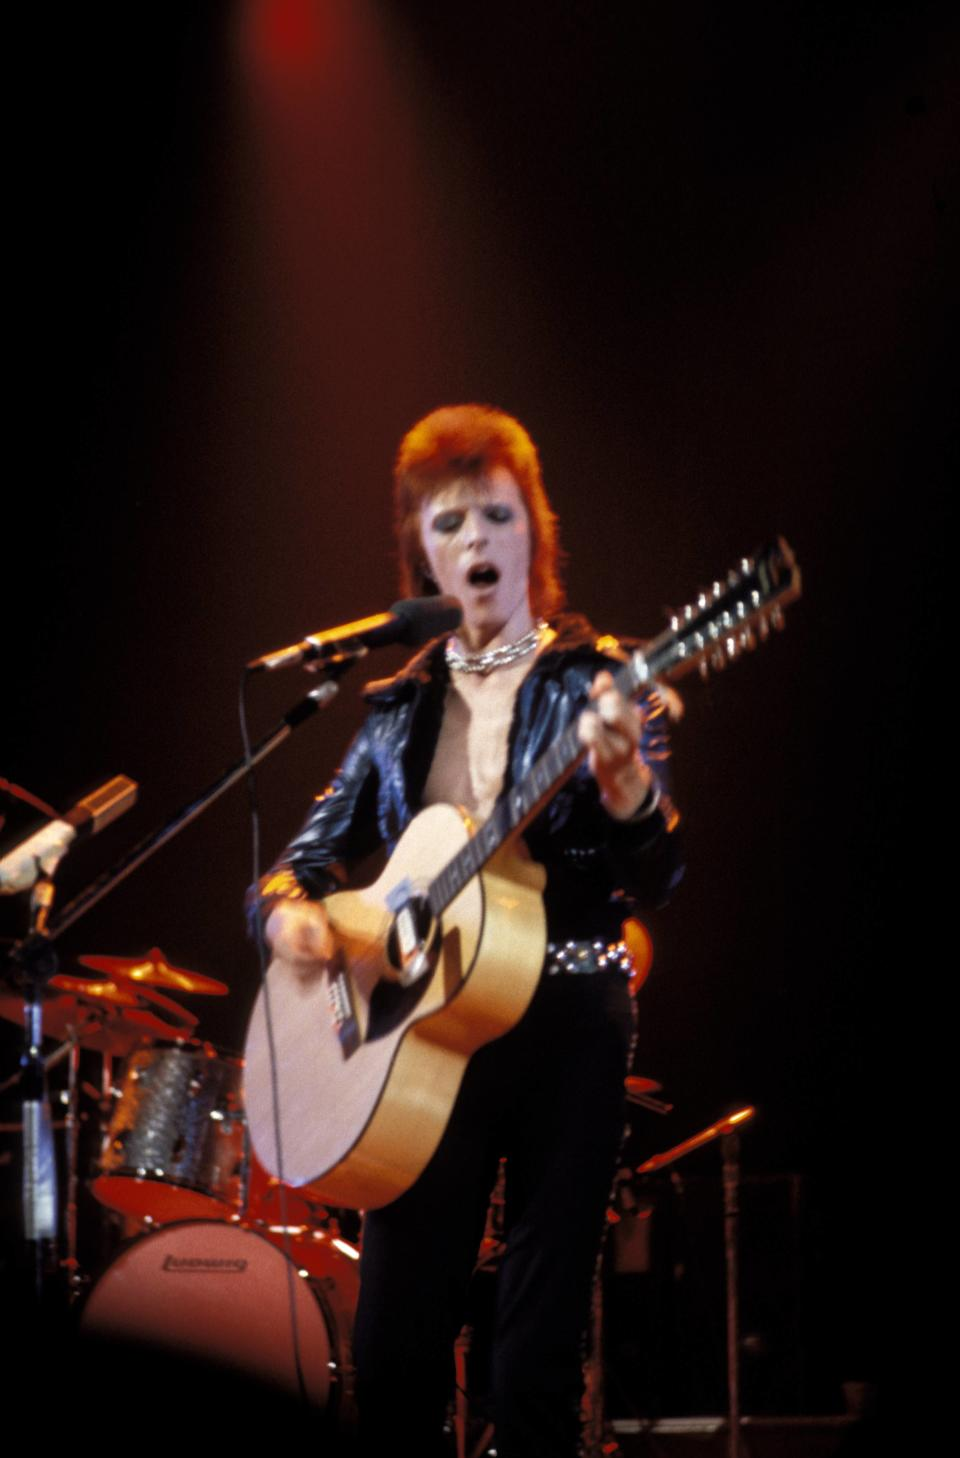 UNITED STATES - SEPTEMBER 22:  Photo of David BOWIE; performing live onstage on first date of Ziggy Stardust US Tour at the Music Hall, Cleveland, playing 12 string acoustic guitar  (Photo by John Lynn Kirk/Redferns)